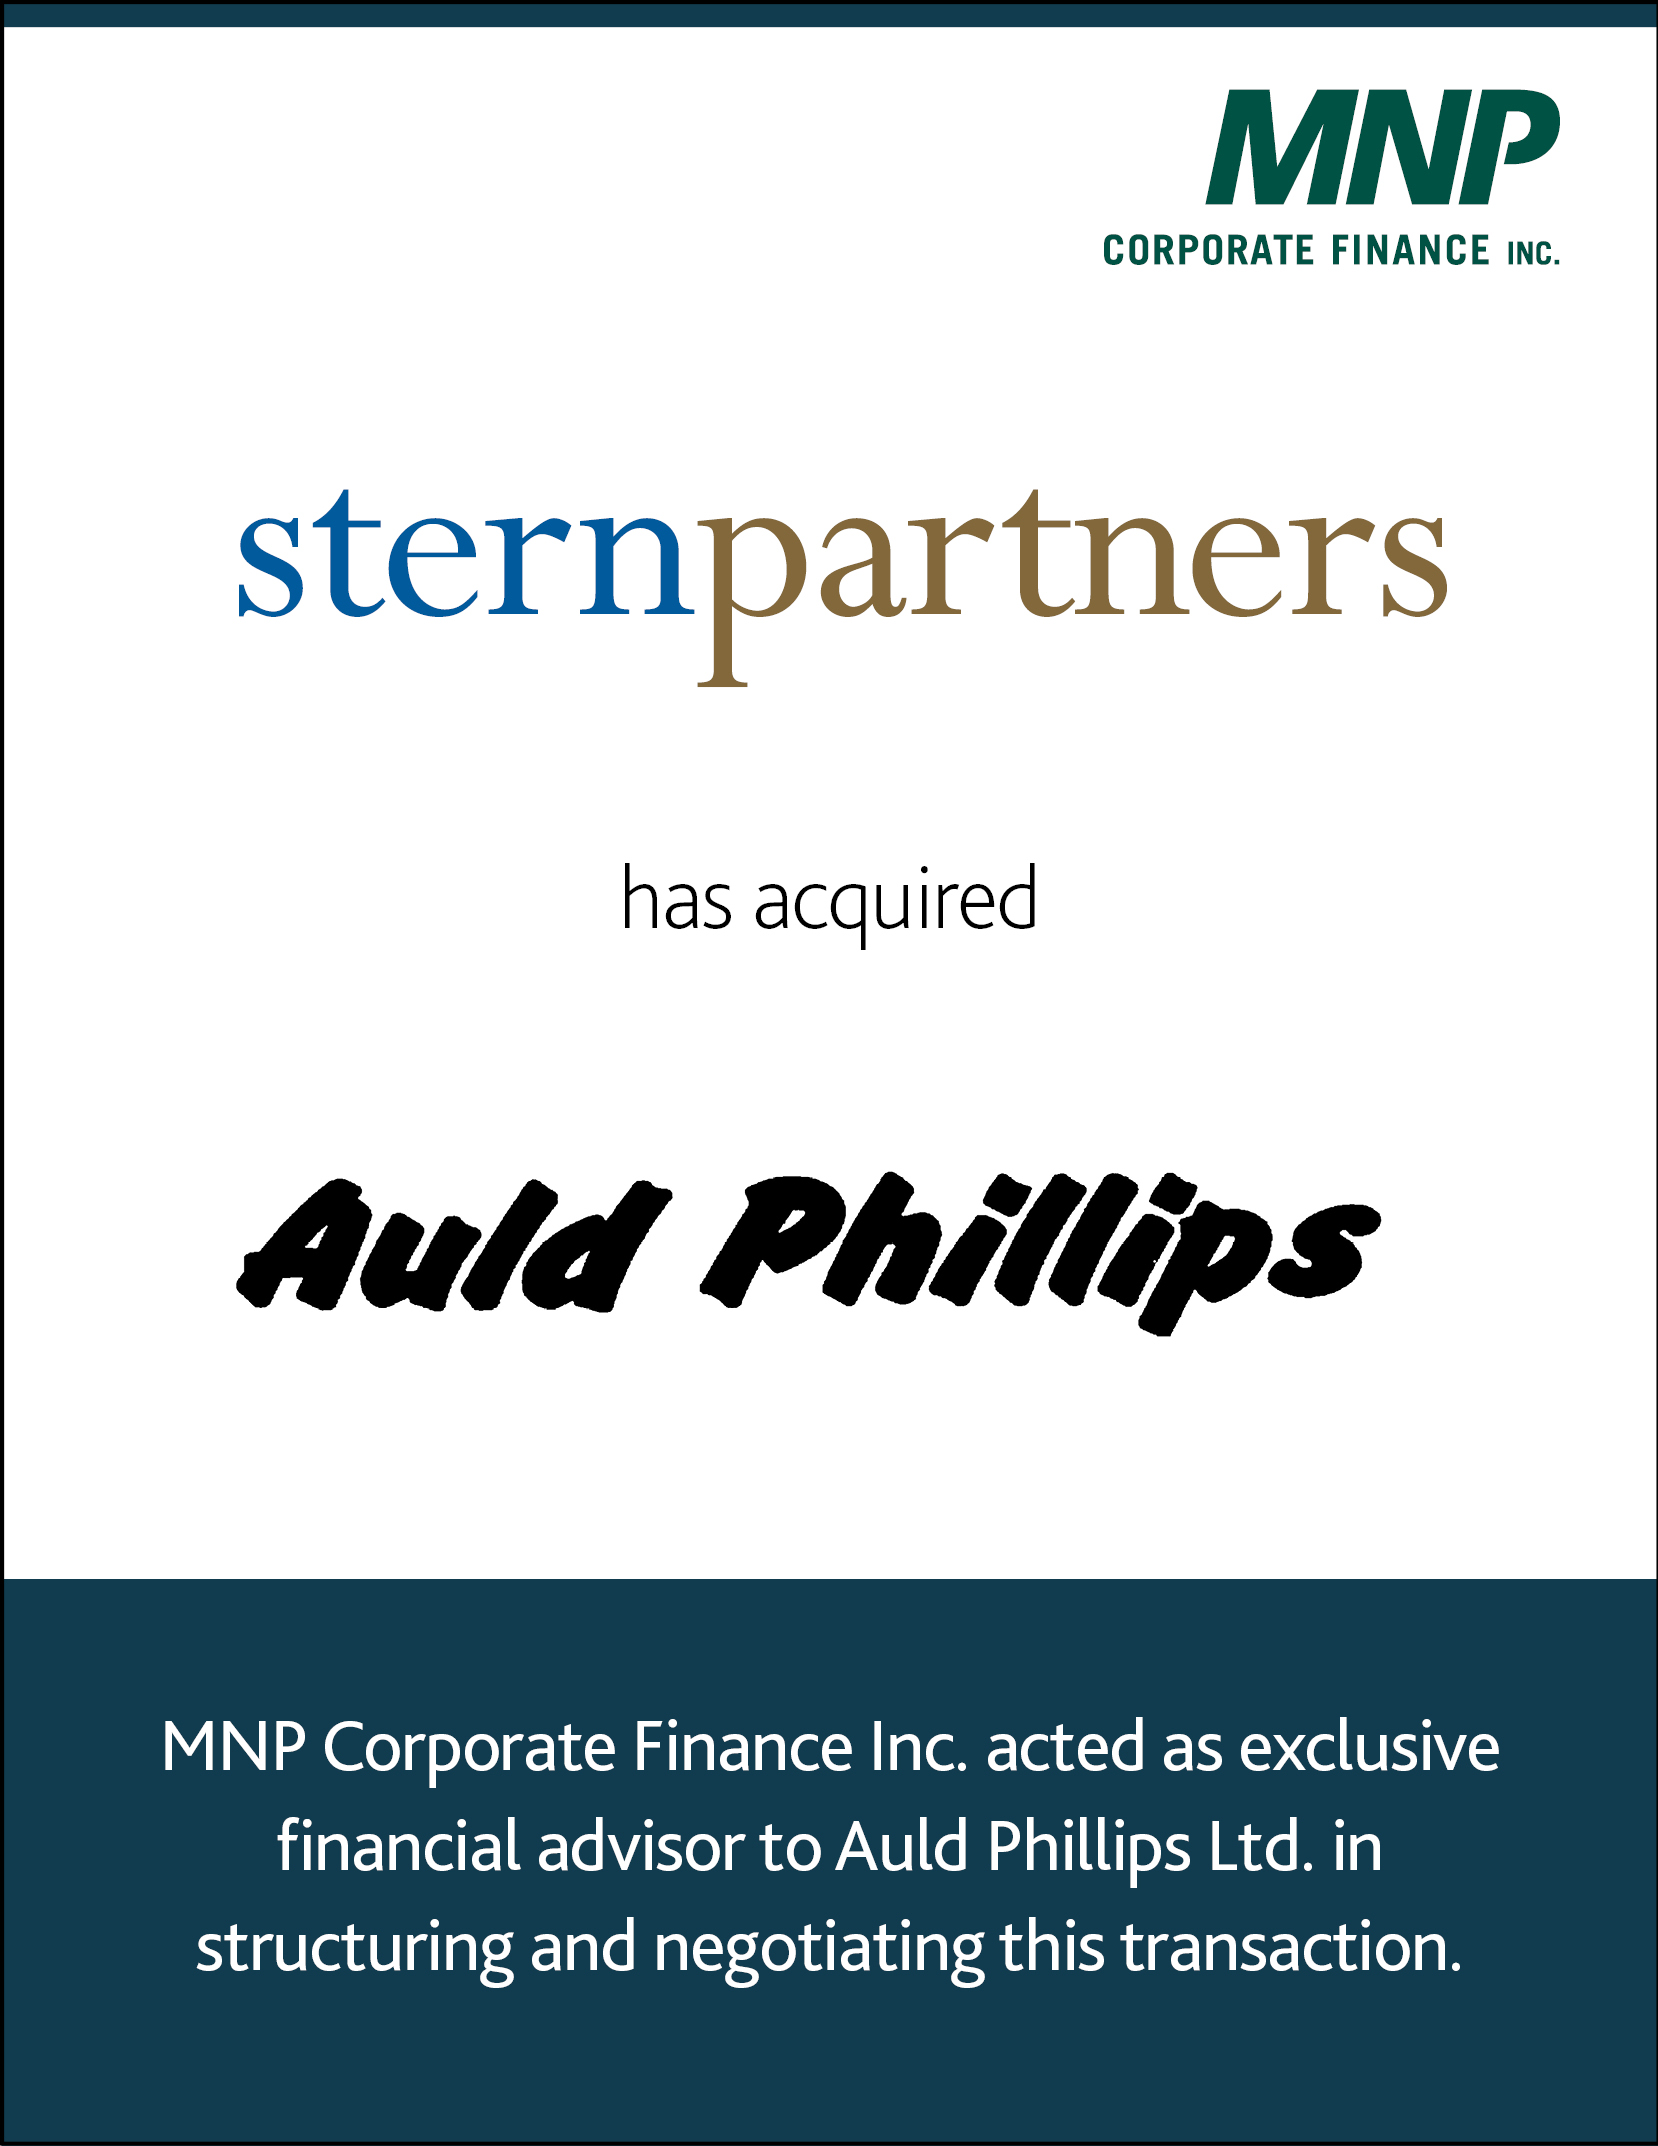 Stern Partners has acquired Auld Phillips